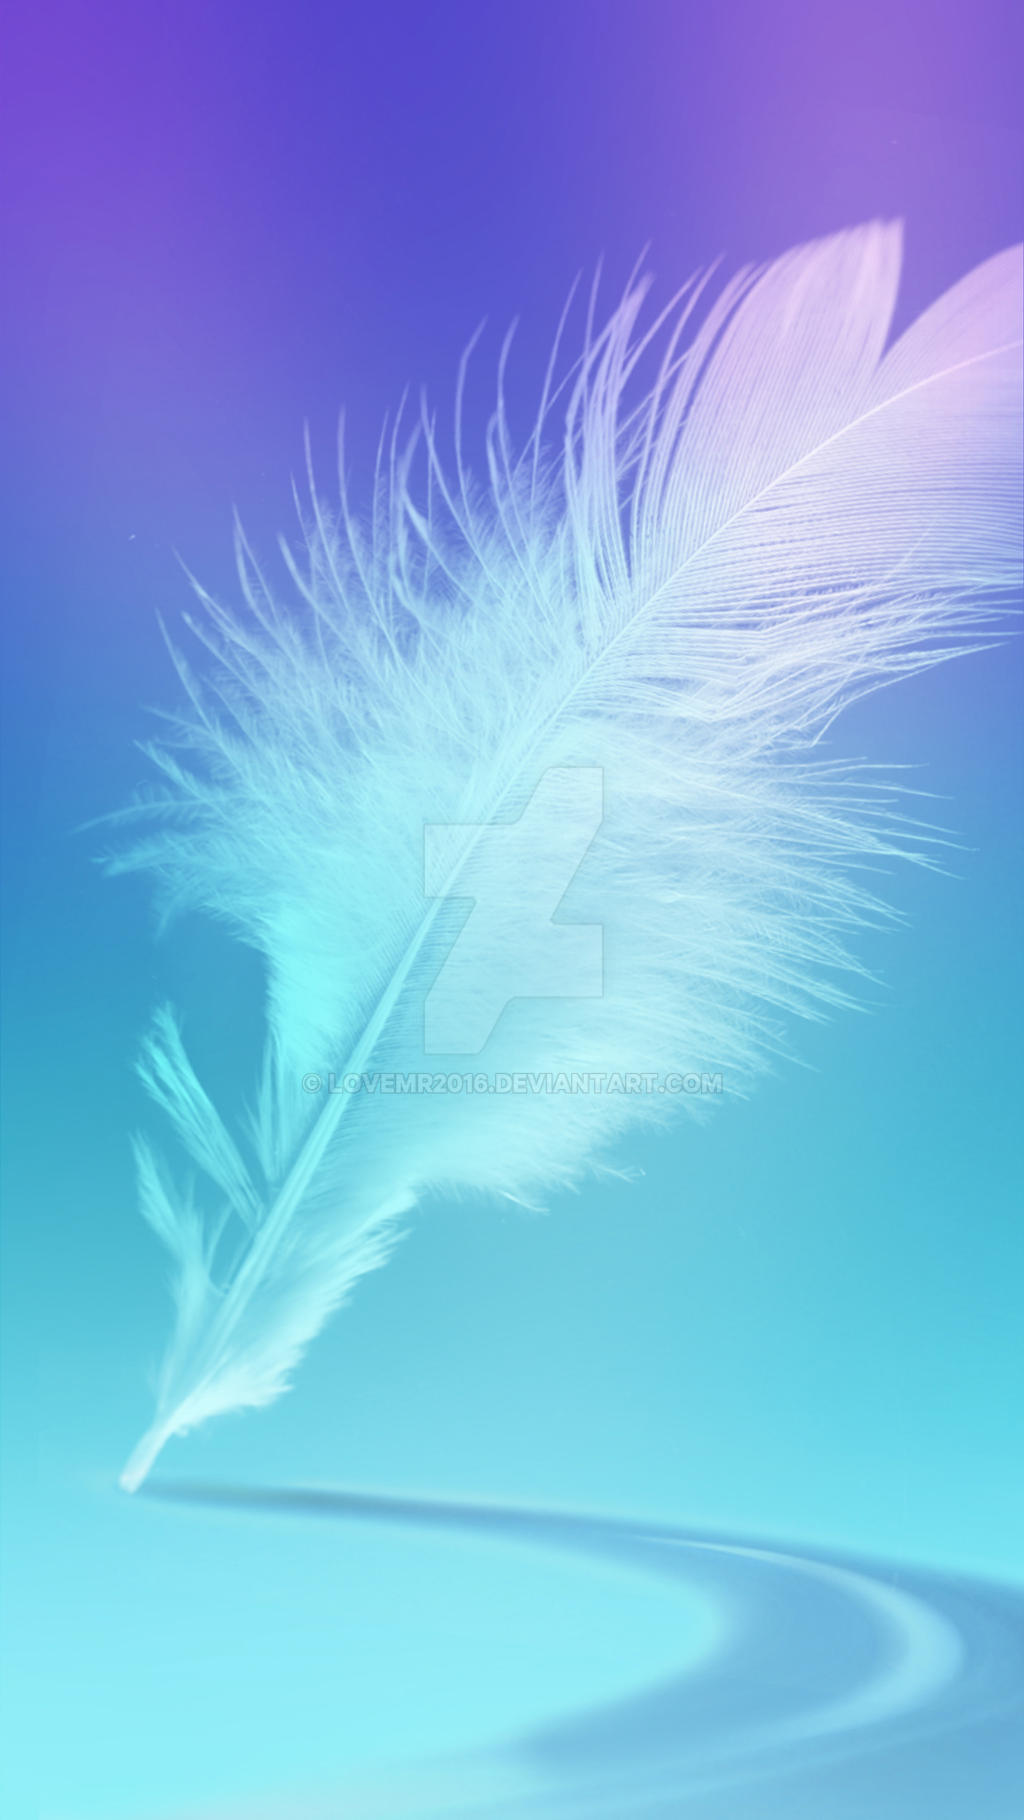 Love Wallpaper For Xperia c : Feather Wallpapers Sony XperiaxPerformance by lovemr2016 on DeviantArt